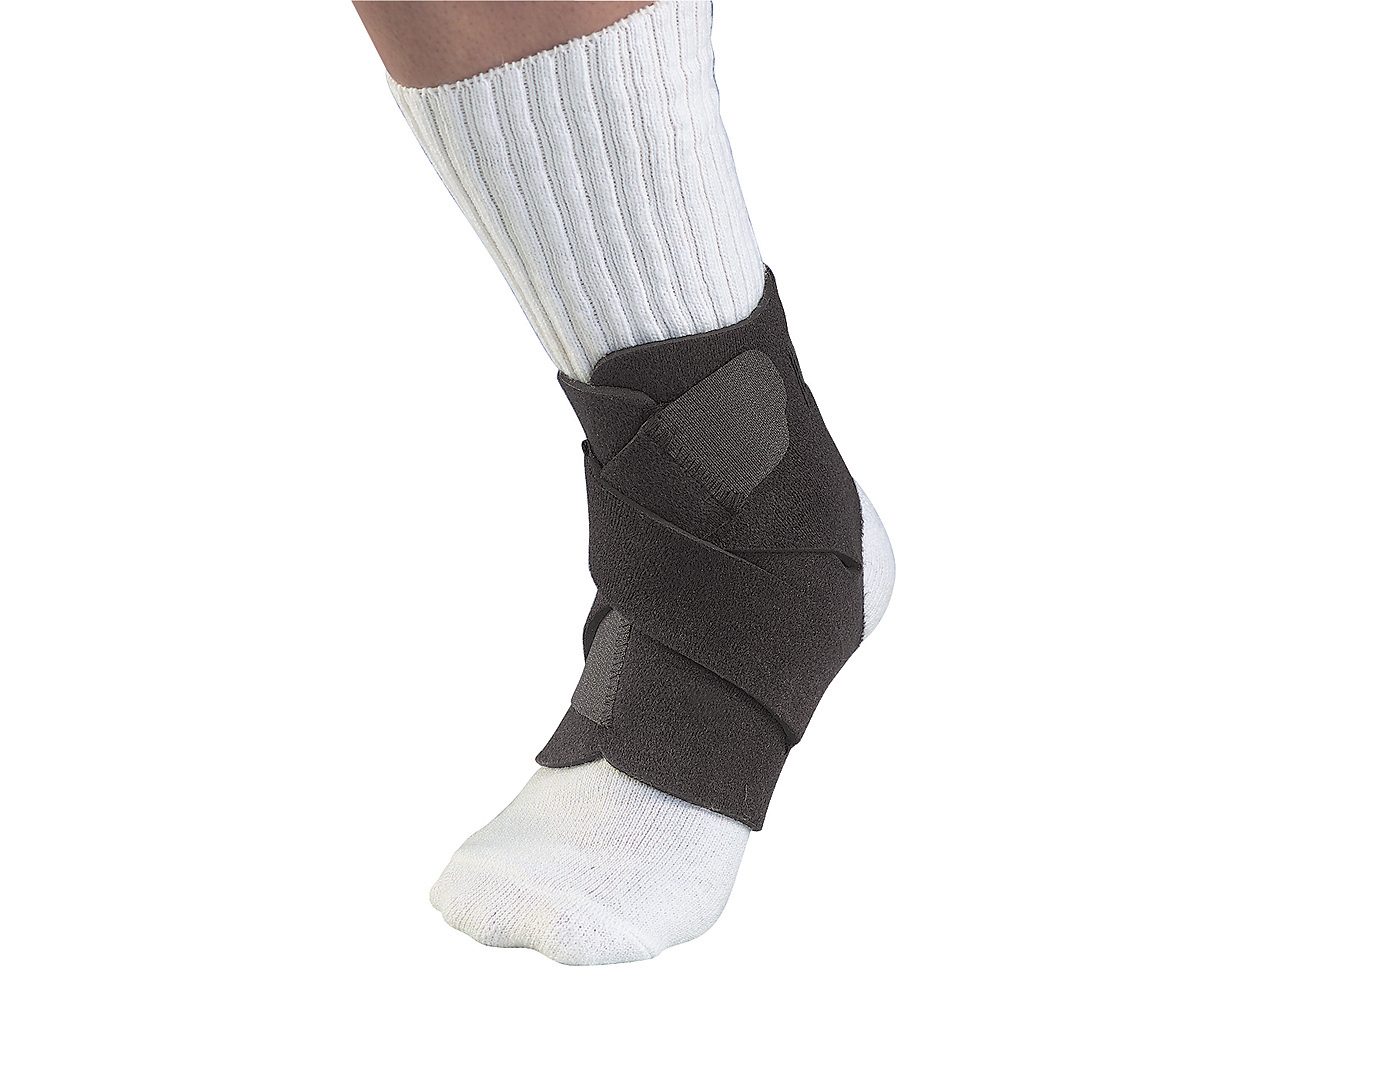 ankle-support-black-adjustable-osfm-4547-74676454719-lr-2.jpg